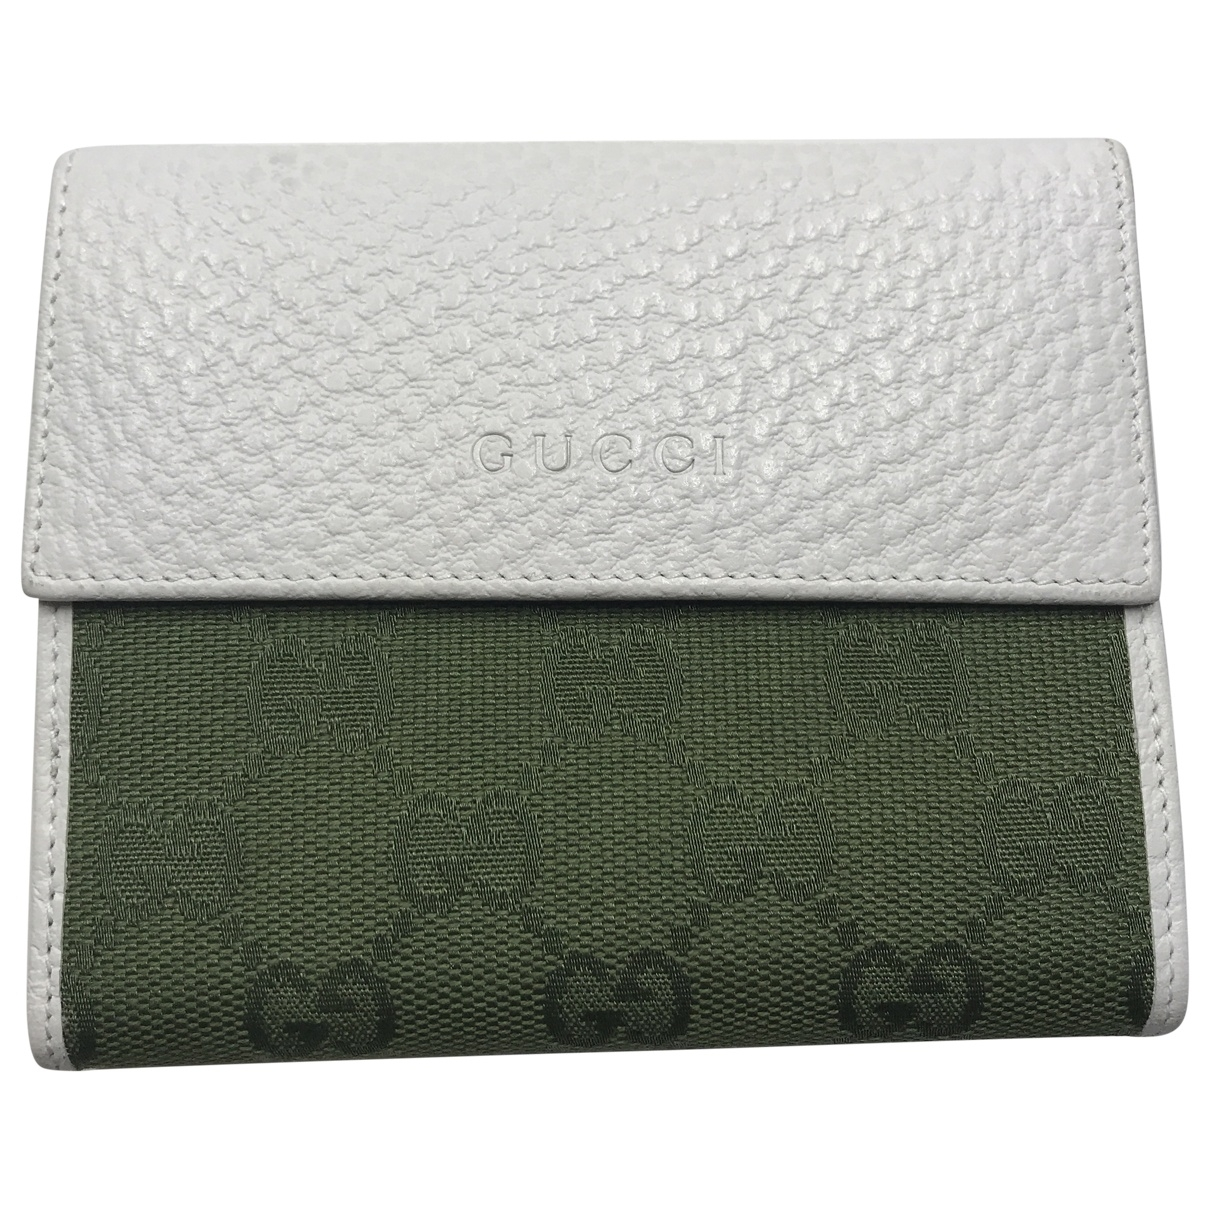 Gucci \N White Leather Purses, wallet & cases for Women \N